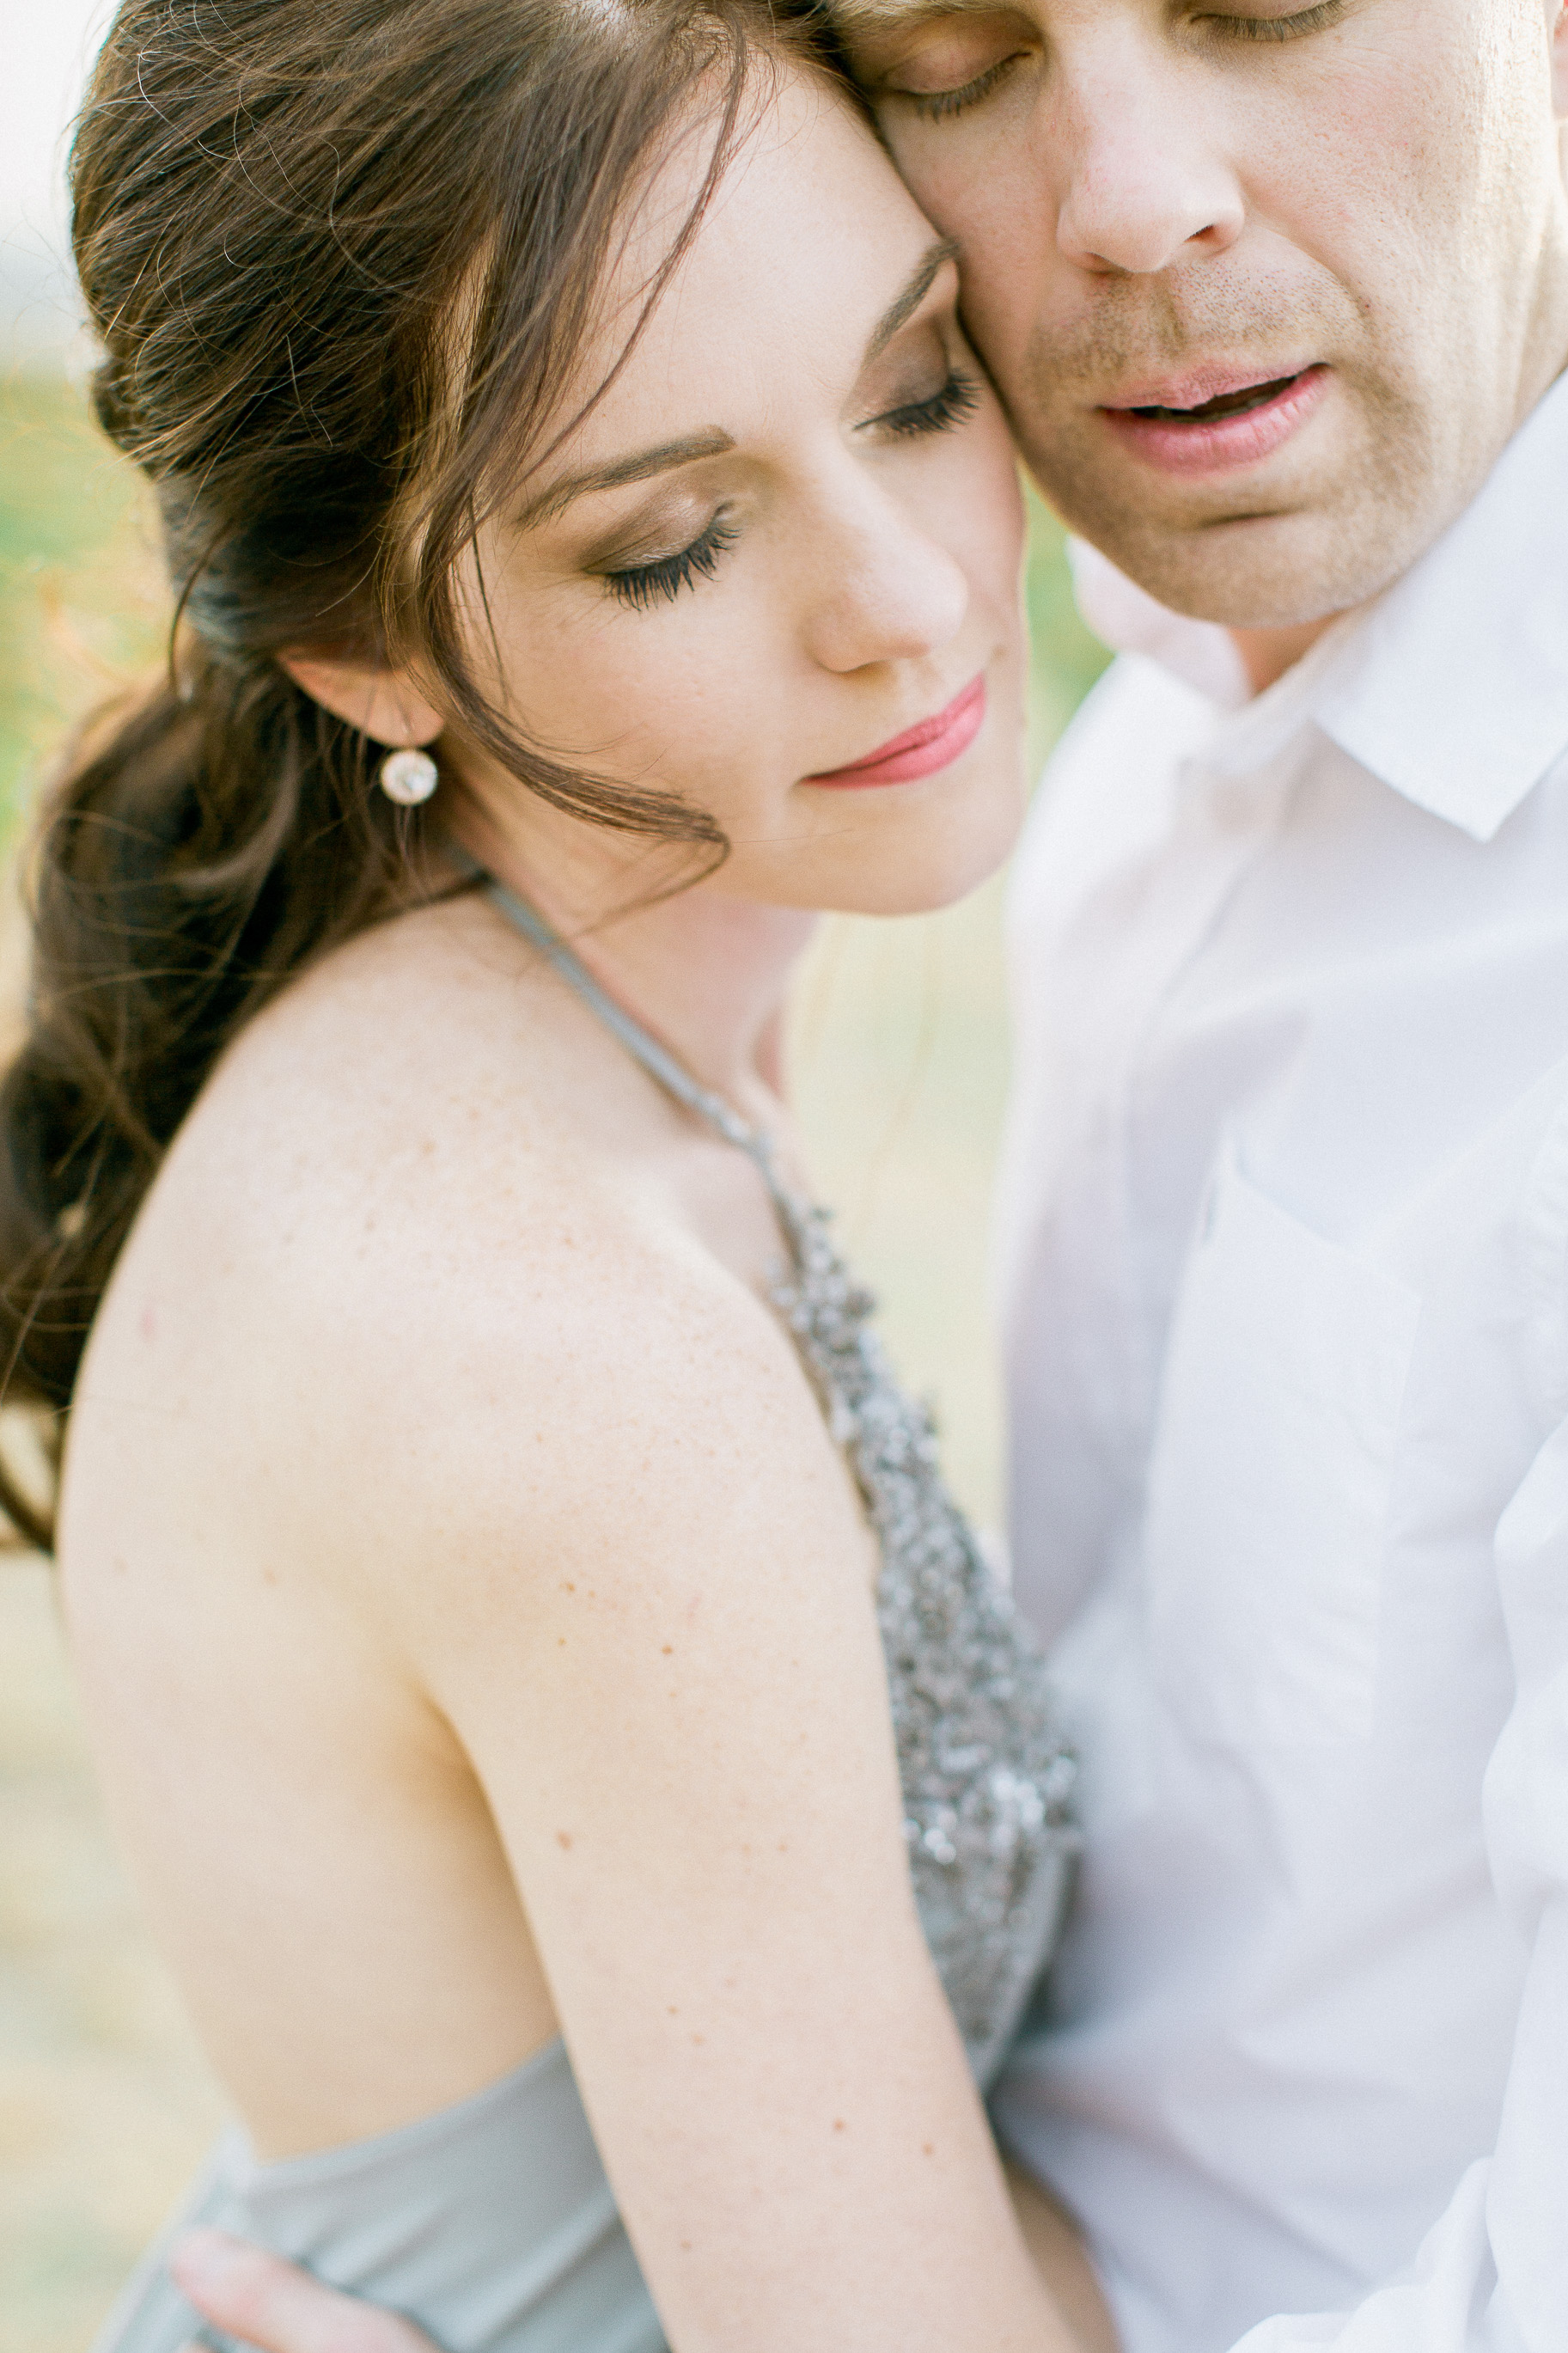 South africa wedding photographer clareece smit photography46.jpg